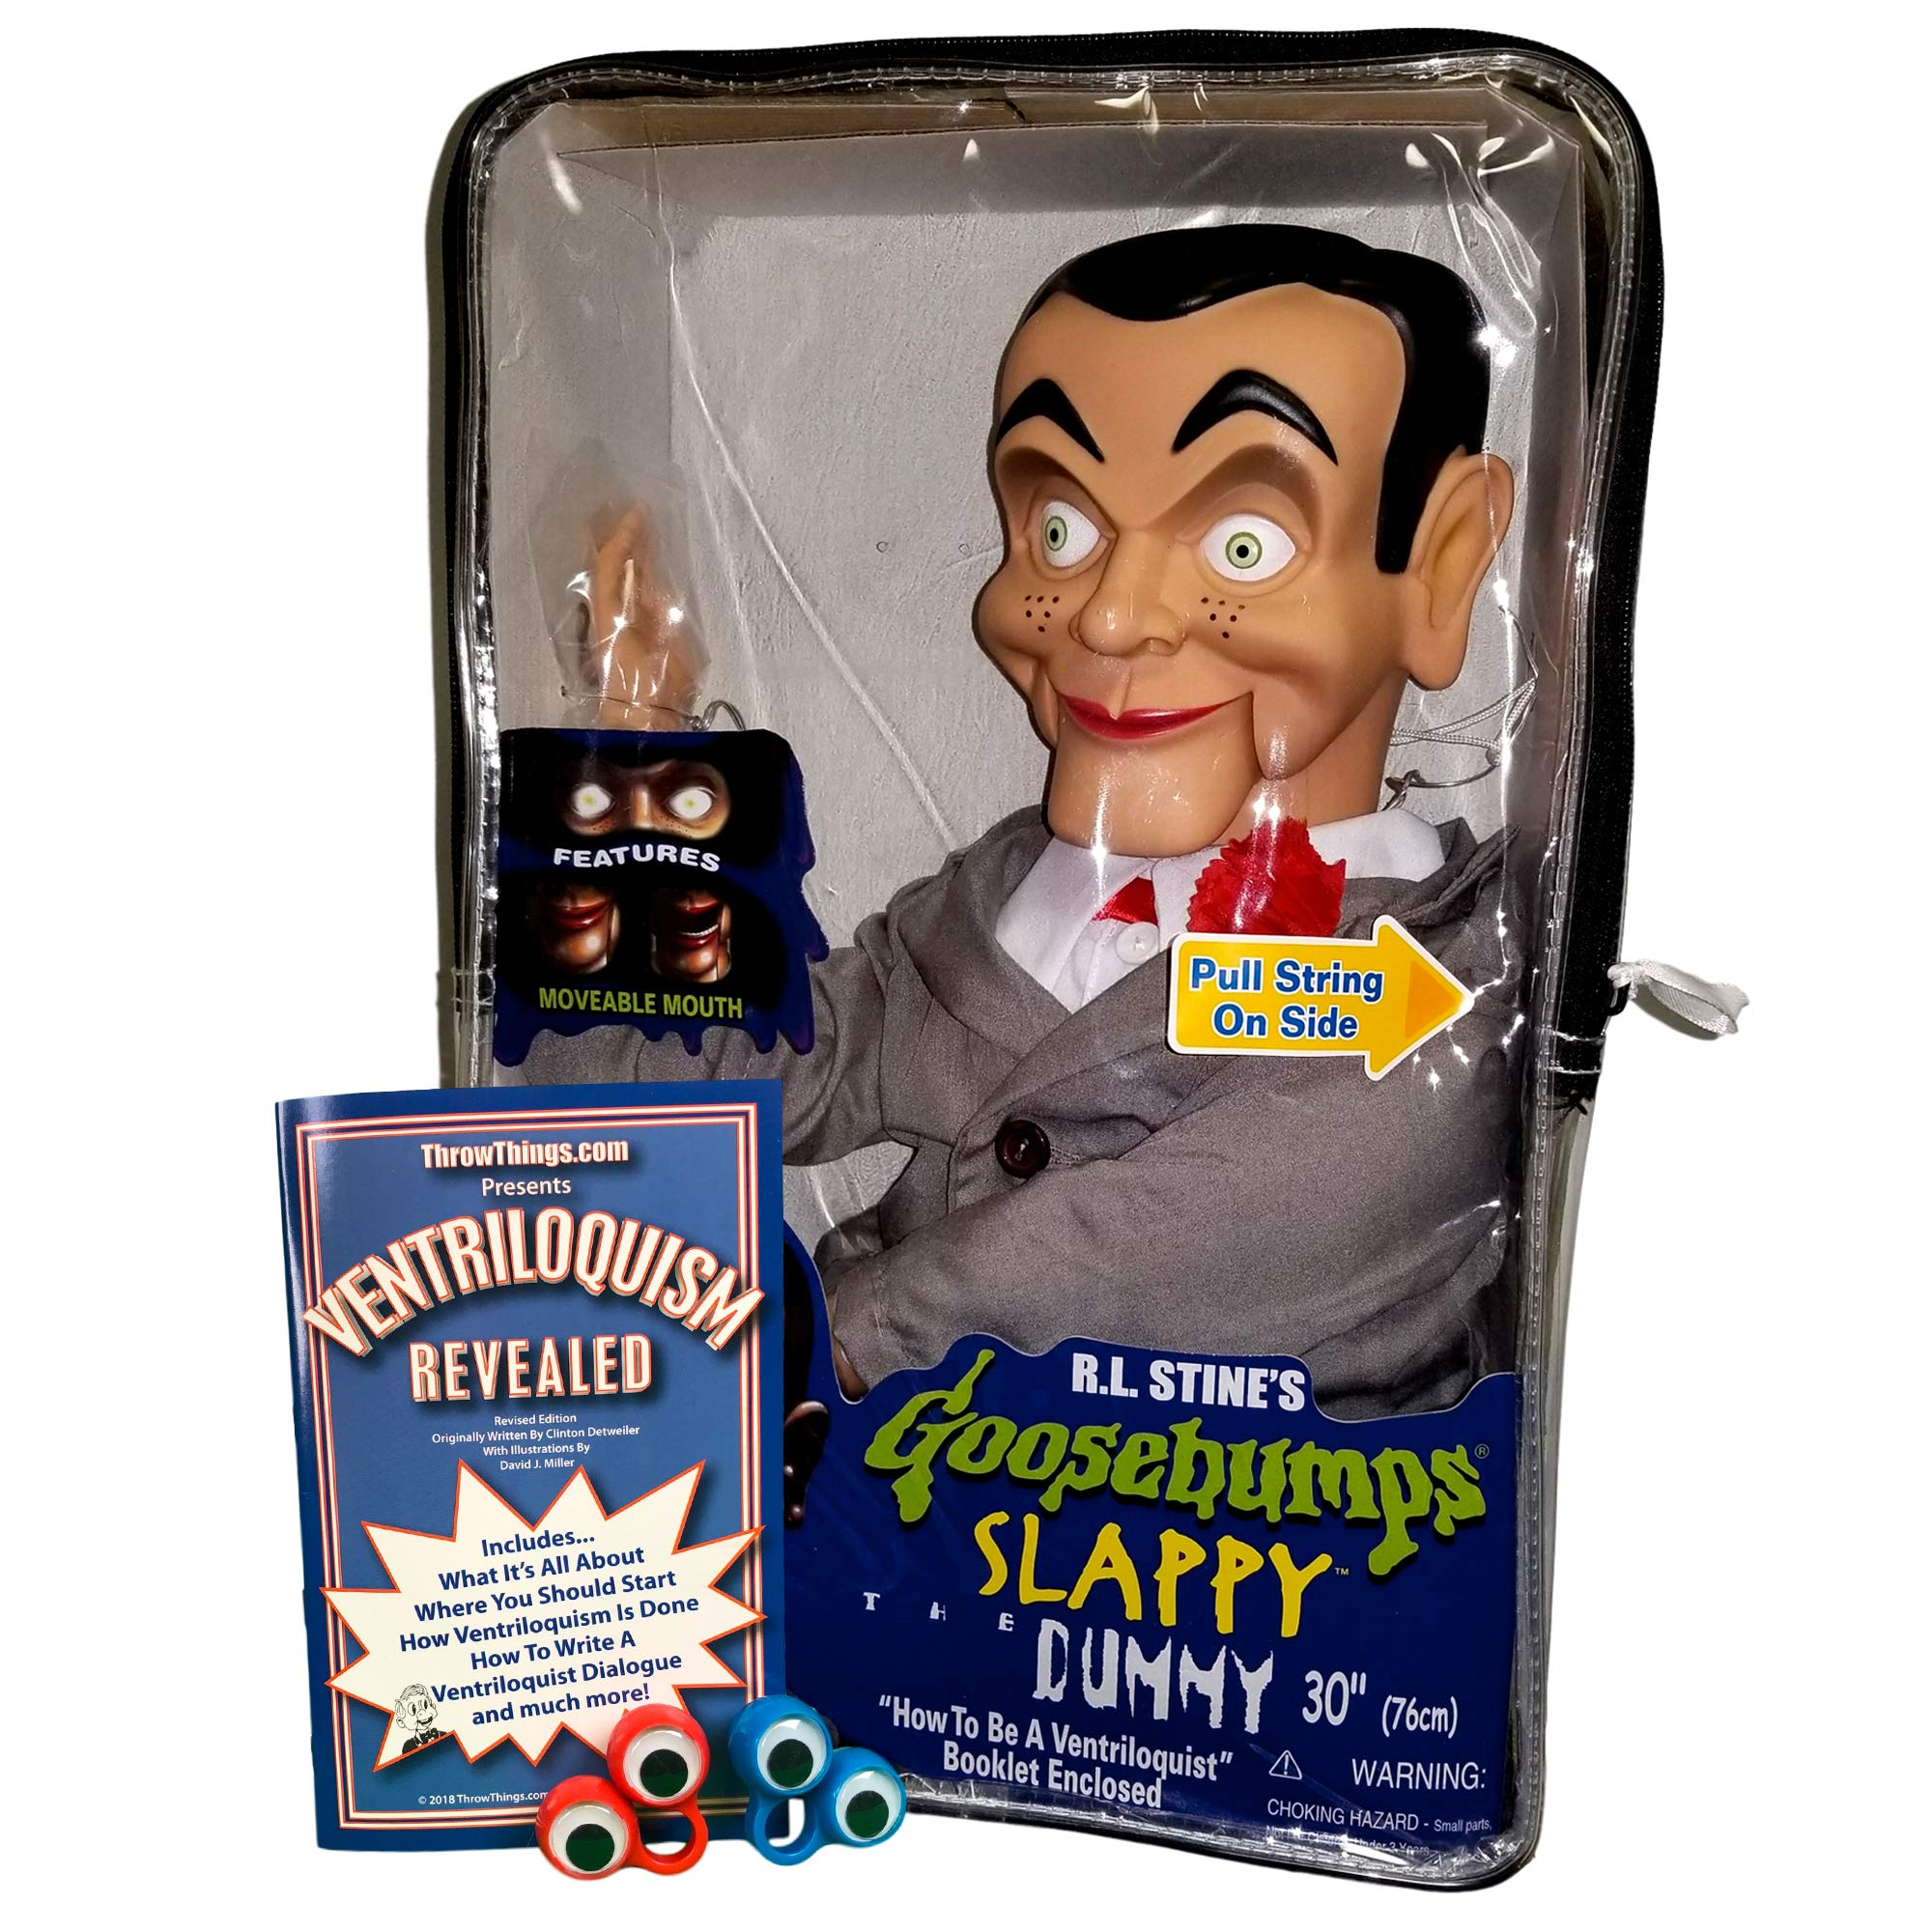 ThrowThings.com Bonus Bundle! Slappy from Goosebumps Ventriloquist Dummy Doll (Non Glowing Eyes) Plus Ventriloquism Revealed Booklet Plus Two Finger gEyes